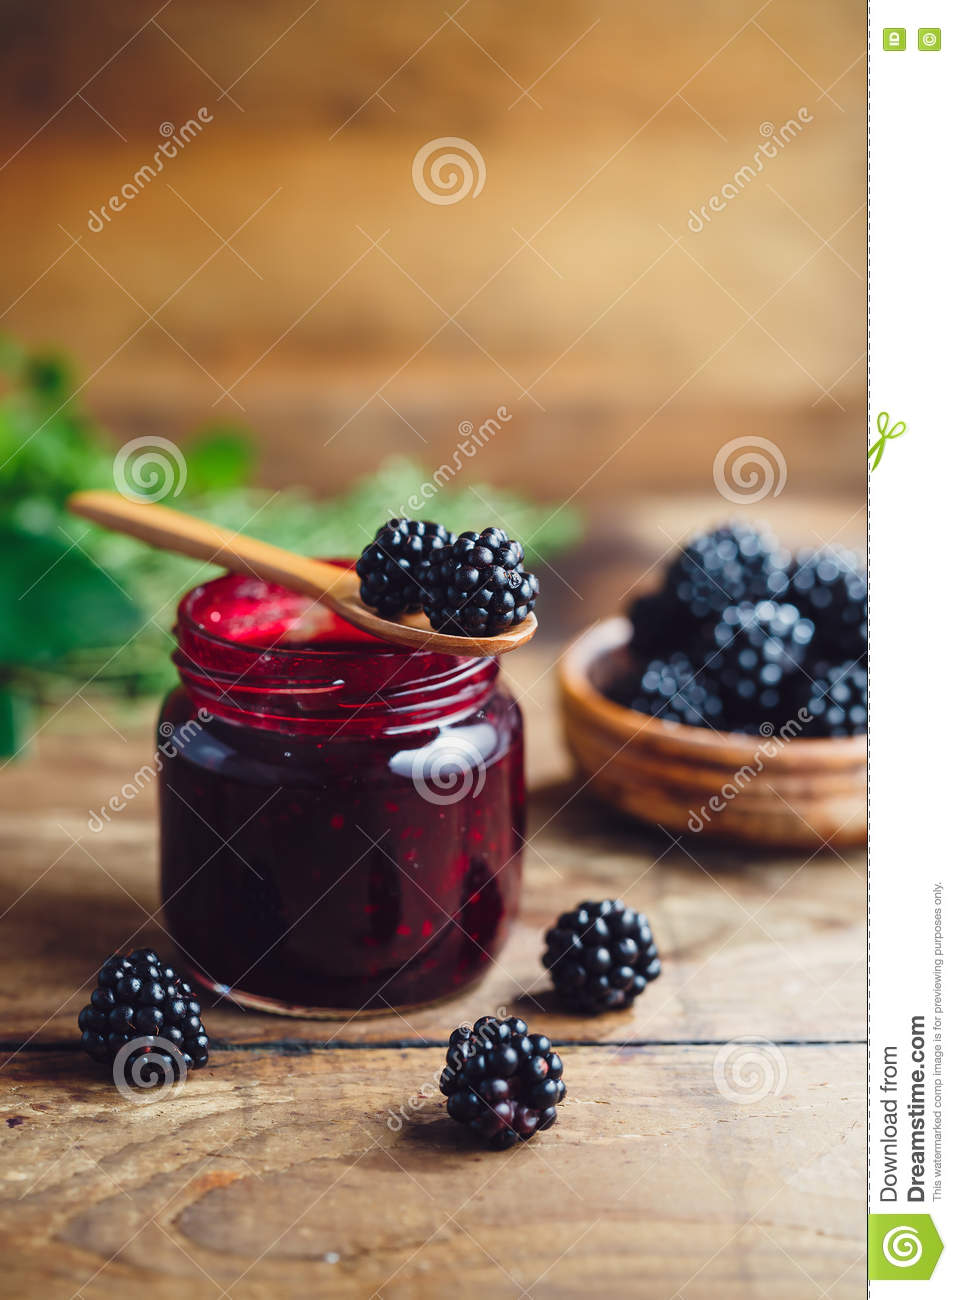 Blackberry Syrup Where Find